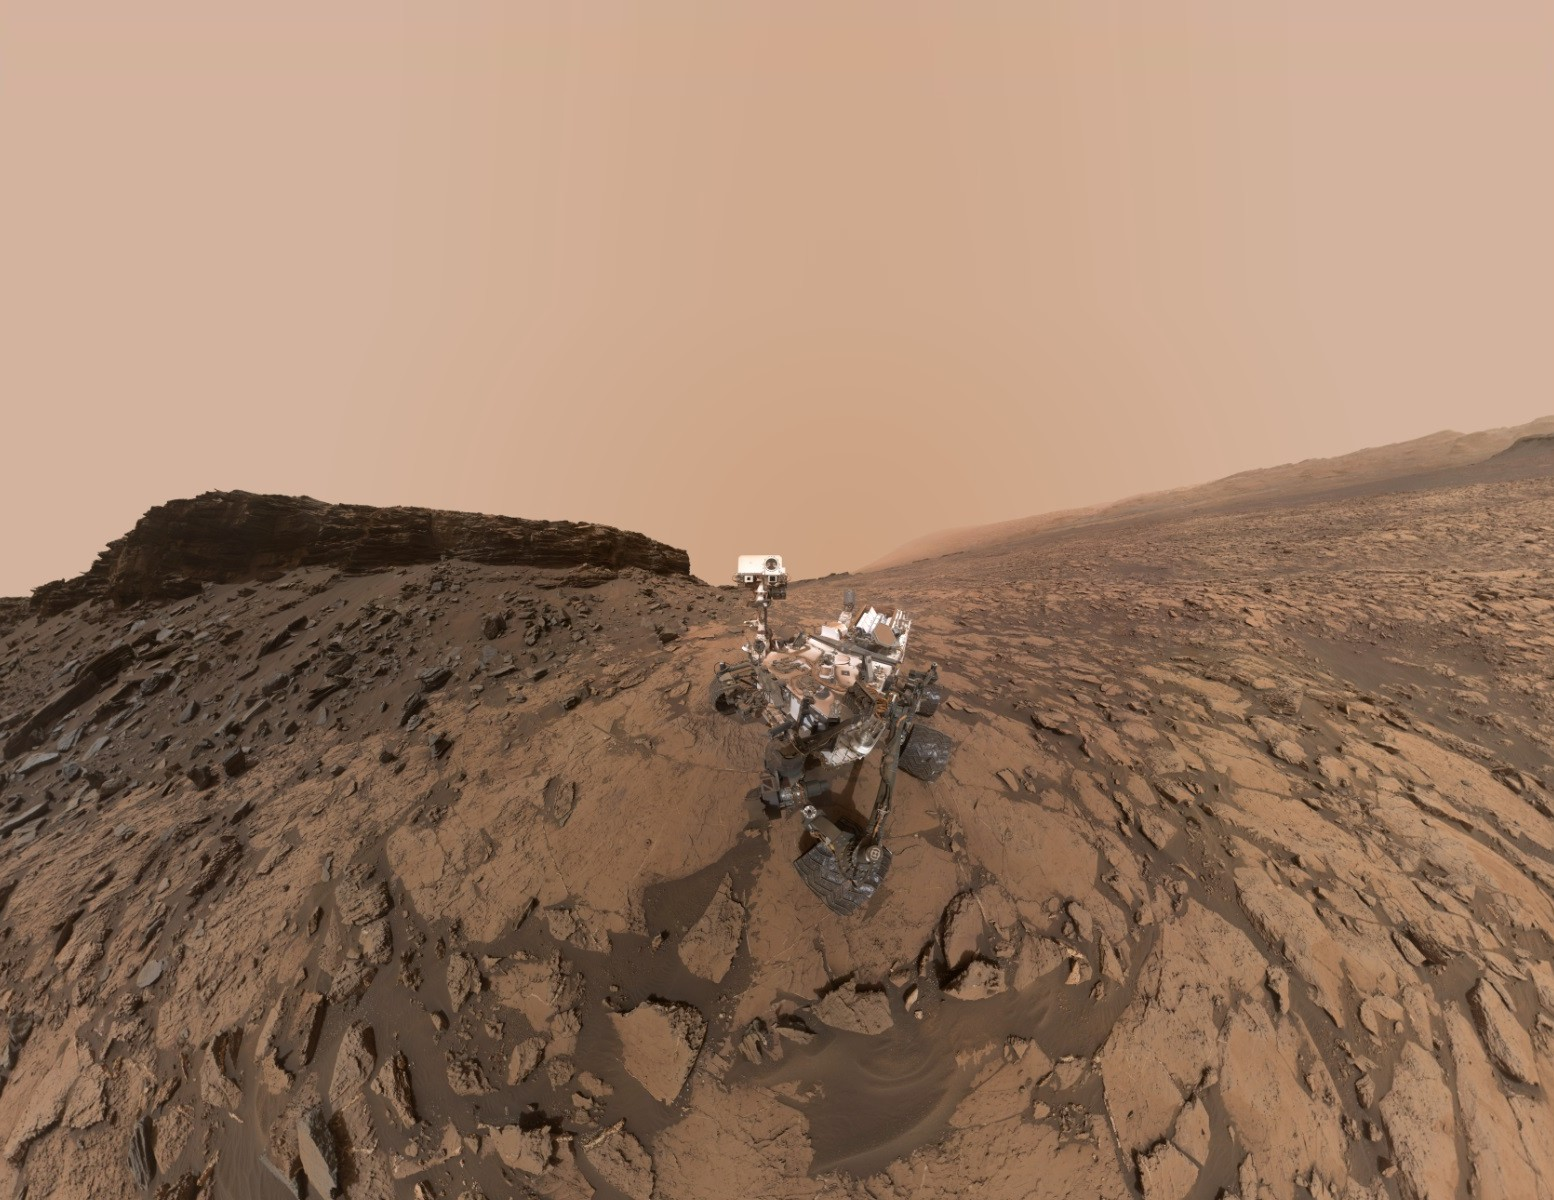 msl-curiosity-murray-buttes-selfie-pia20844-r